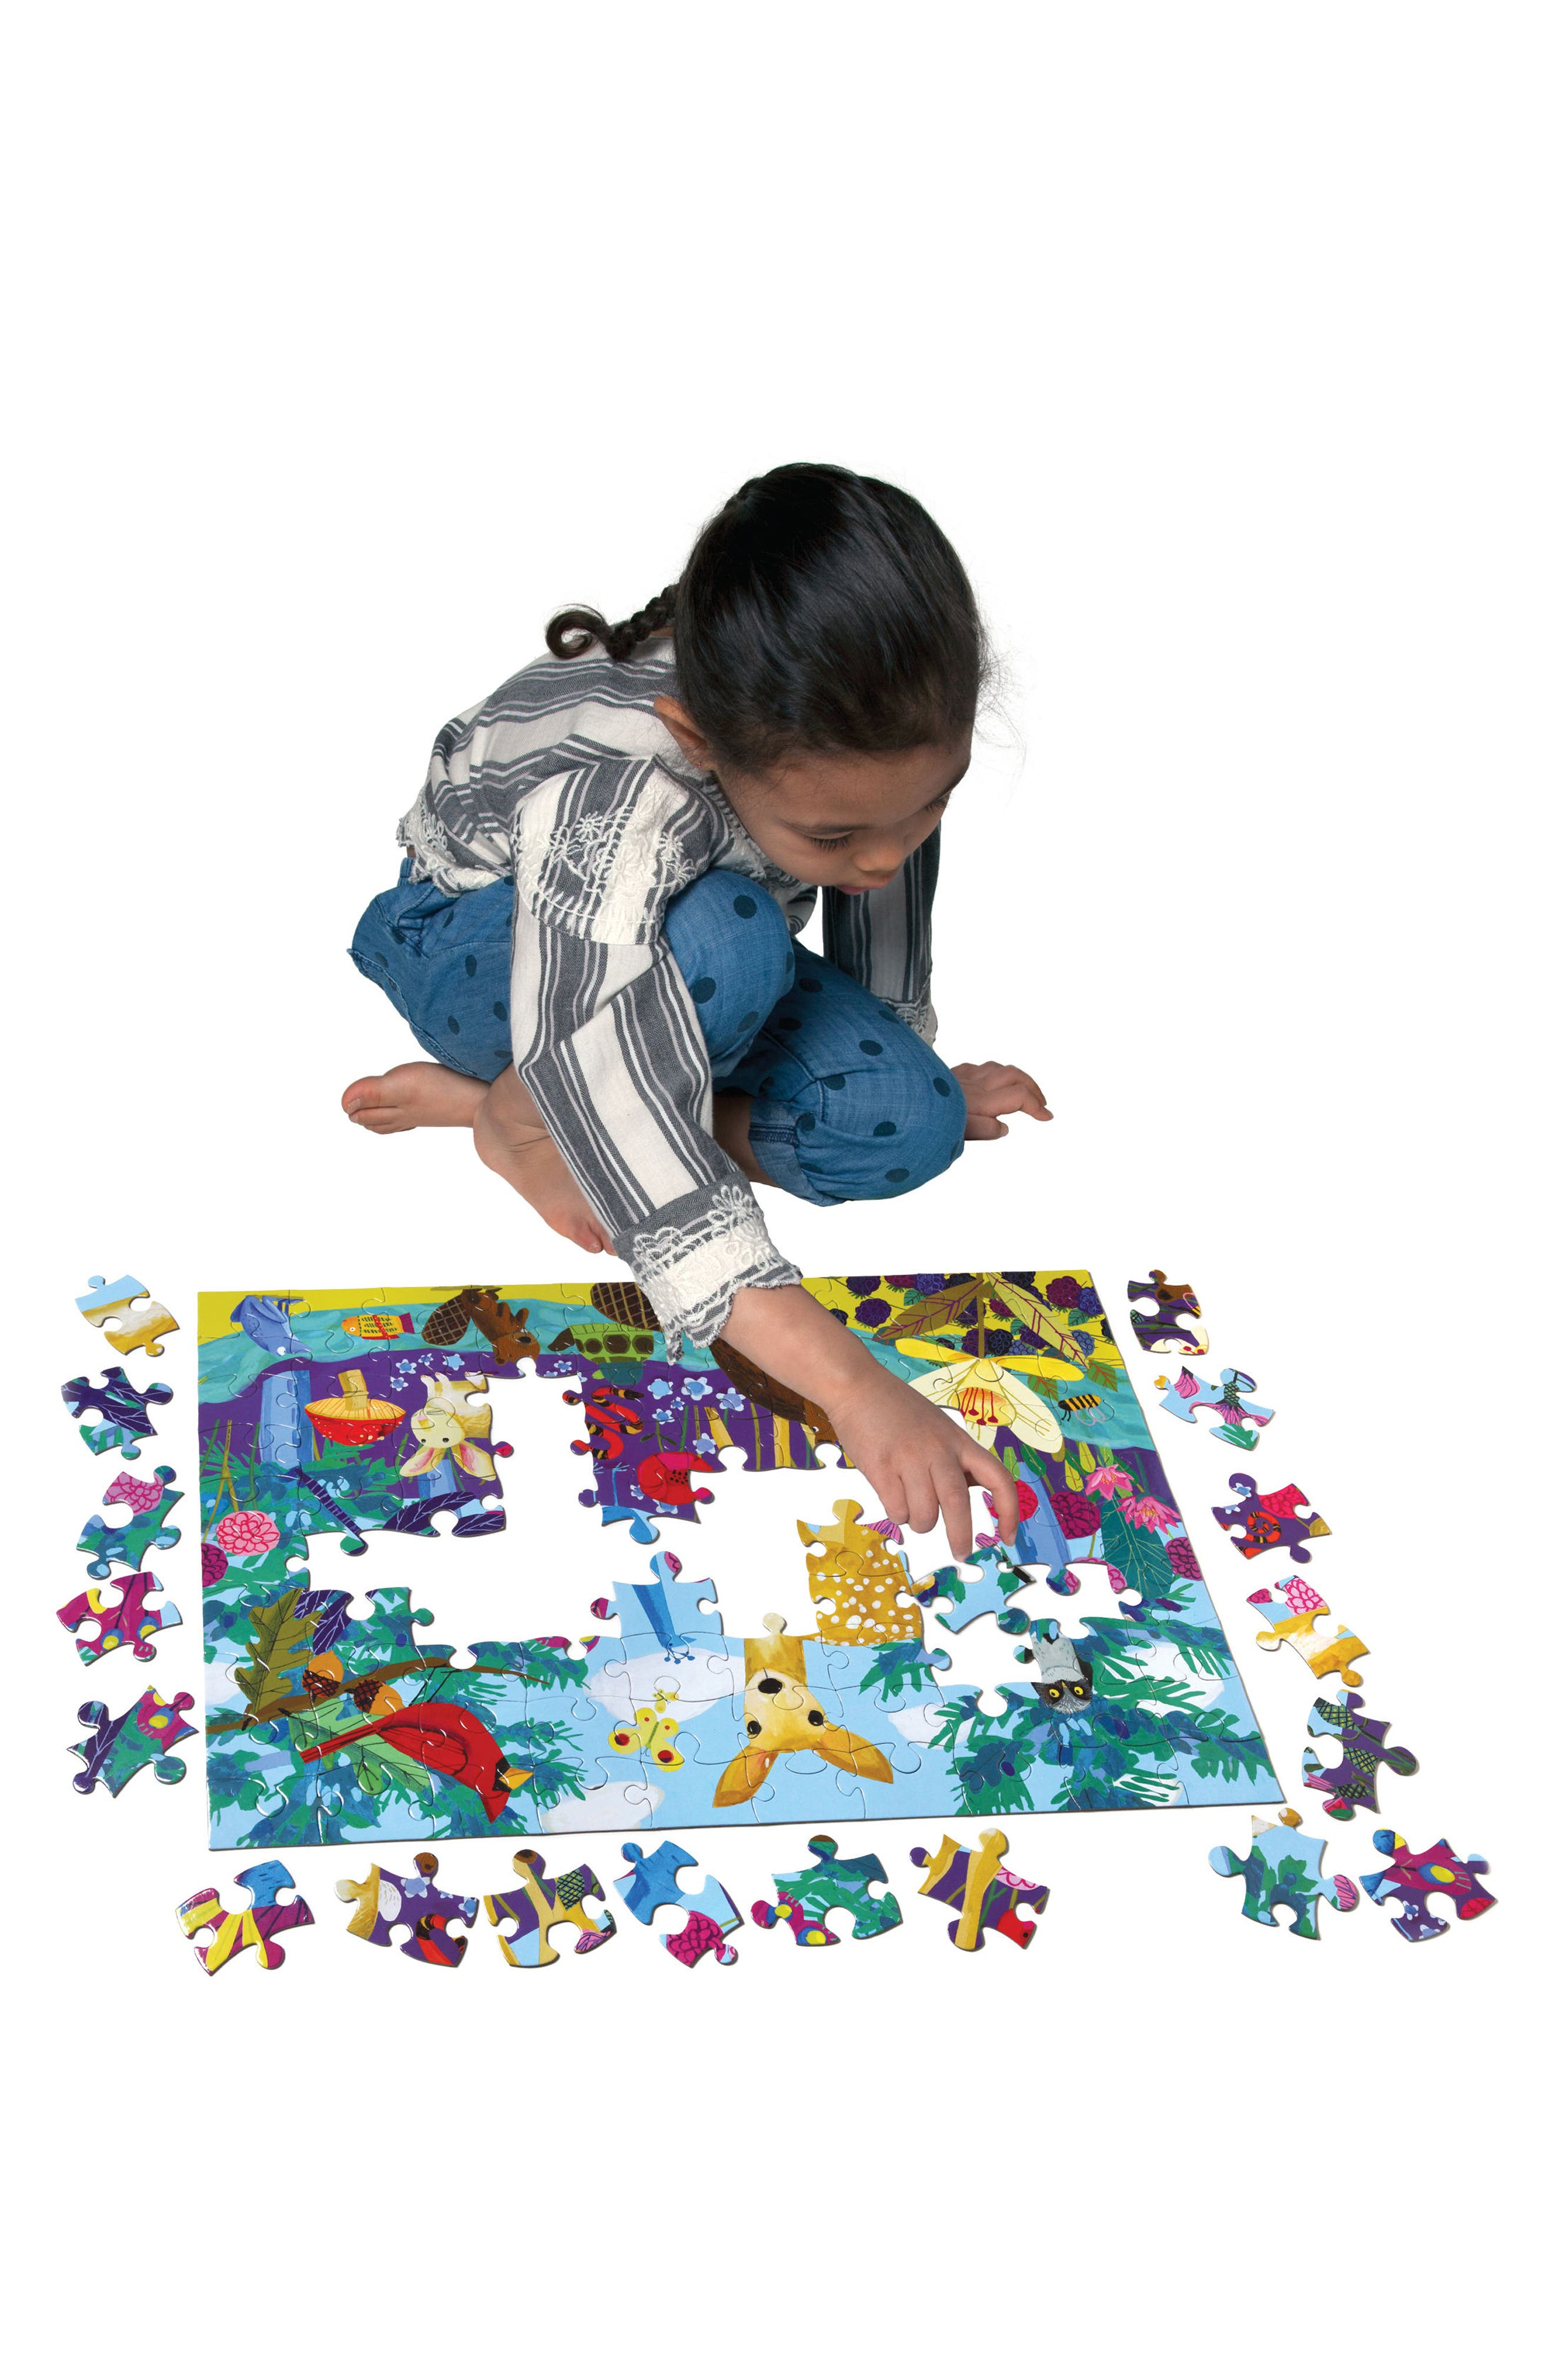 Life on Earth 100-Piece Puzzle,                             Alternate thumbnail 4, color,                             400